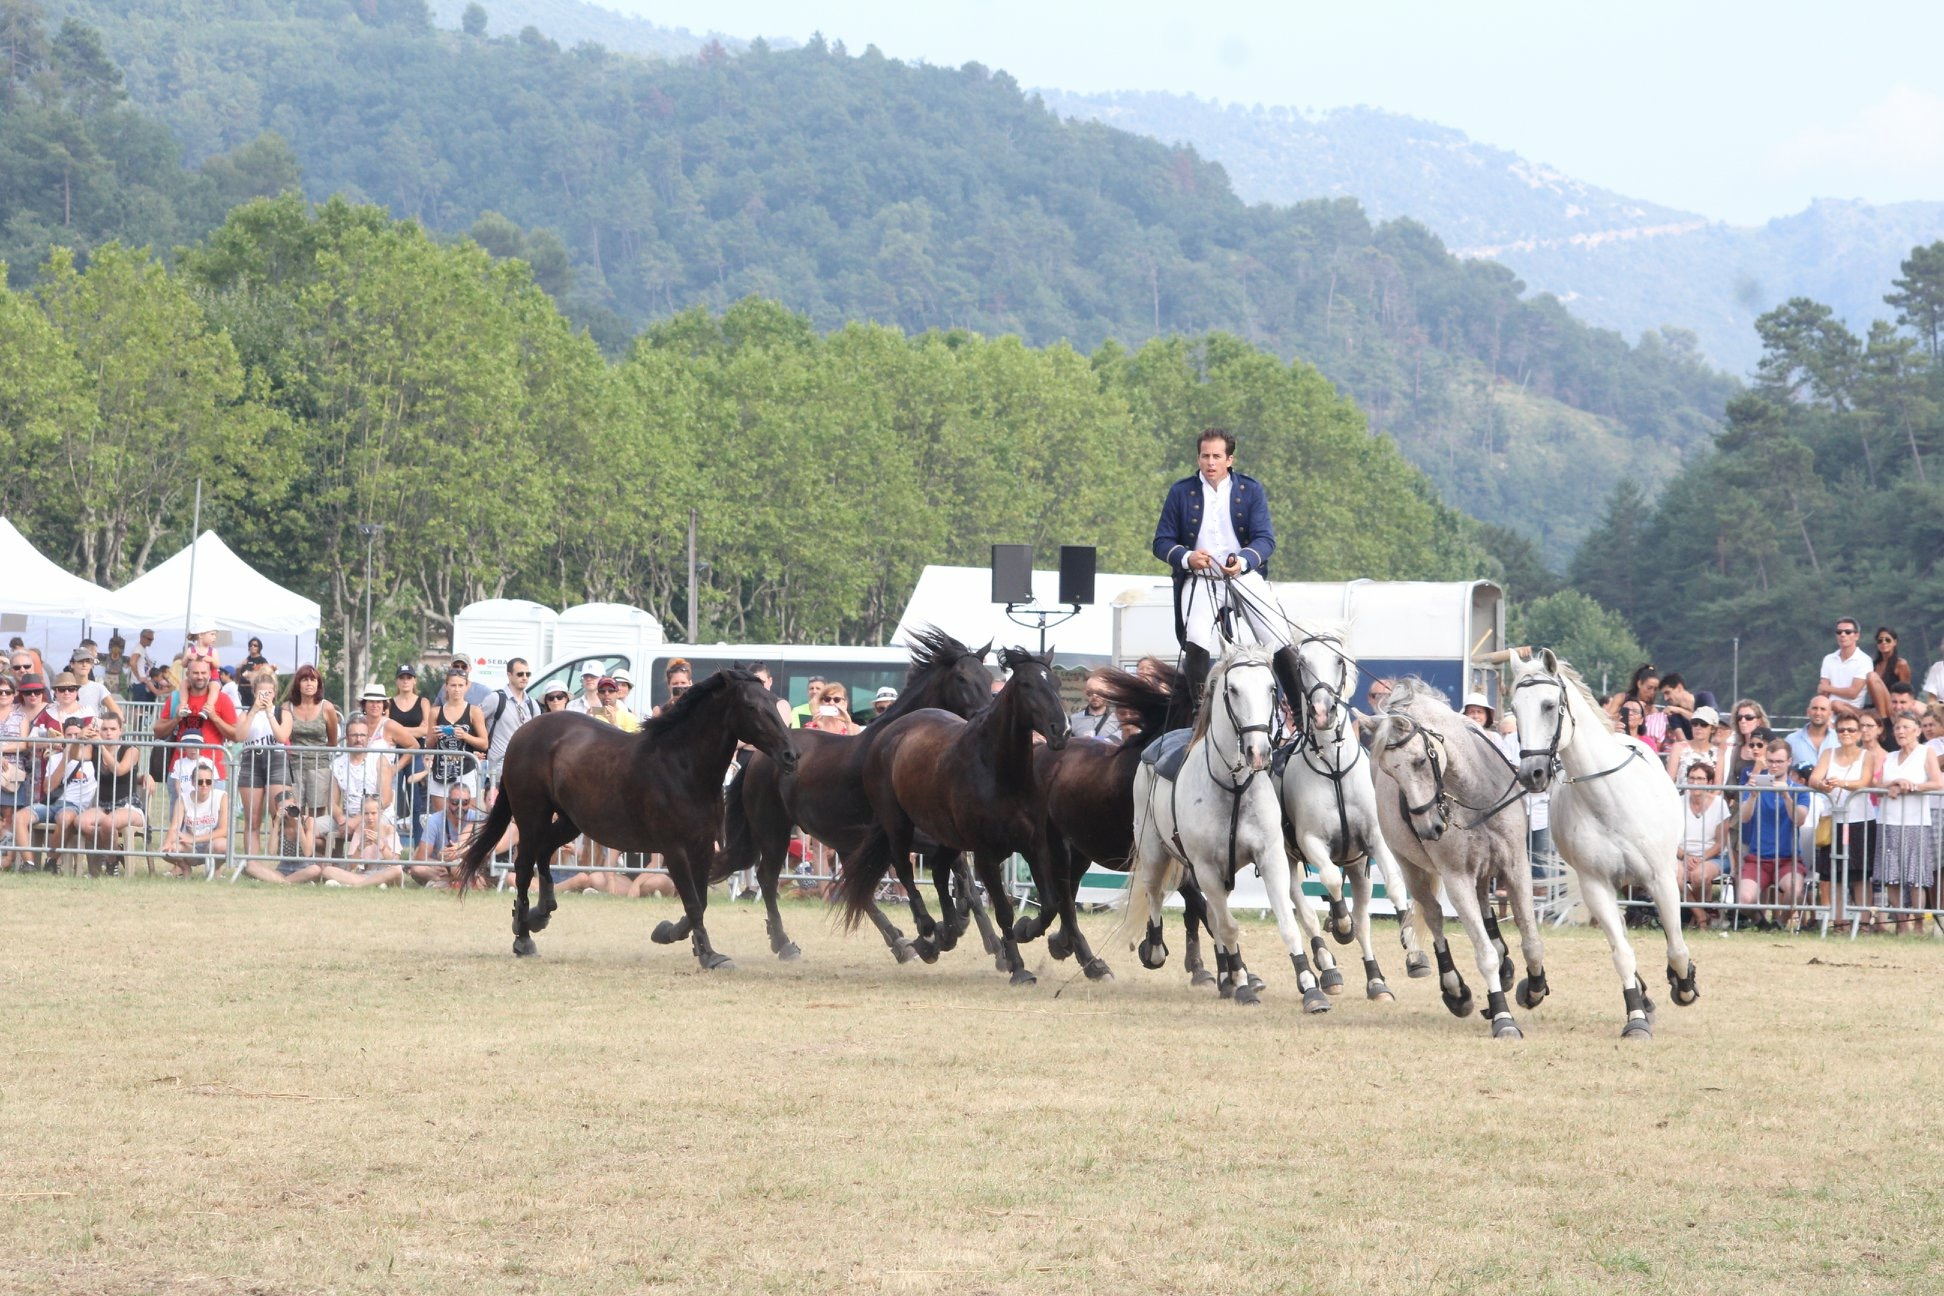 aucop-evenement-fete du cheval-levens-sonorisation-eclairage-location-materiel-audiovisuel-nice-marseille-paris